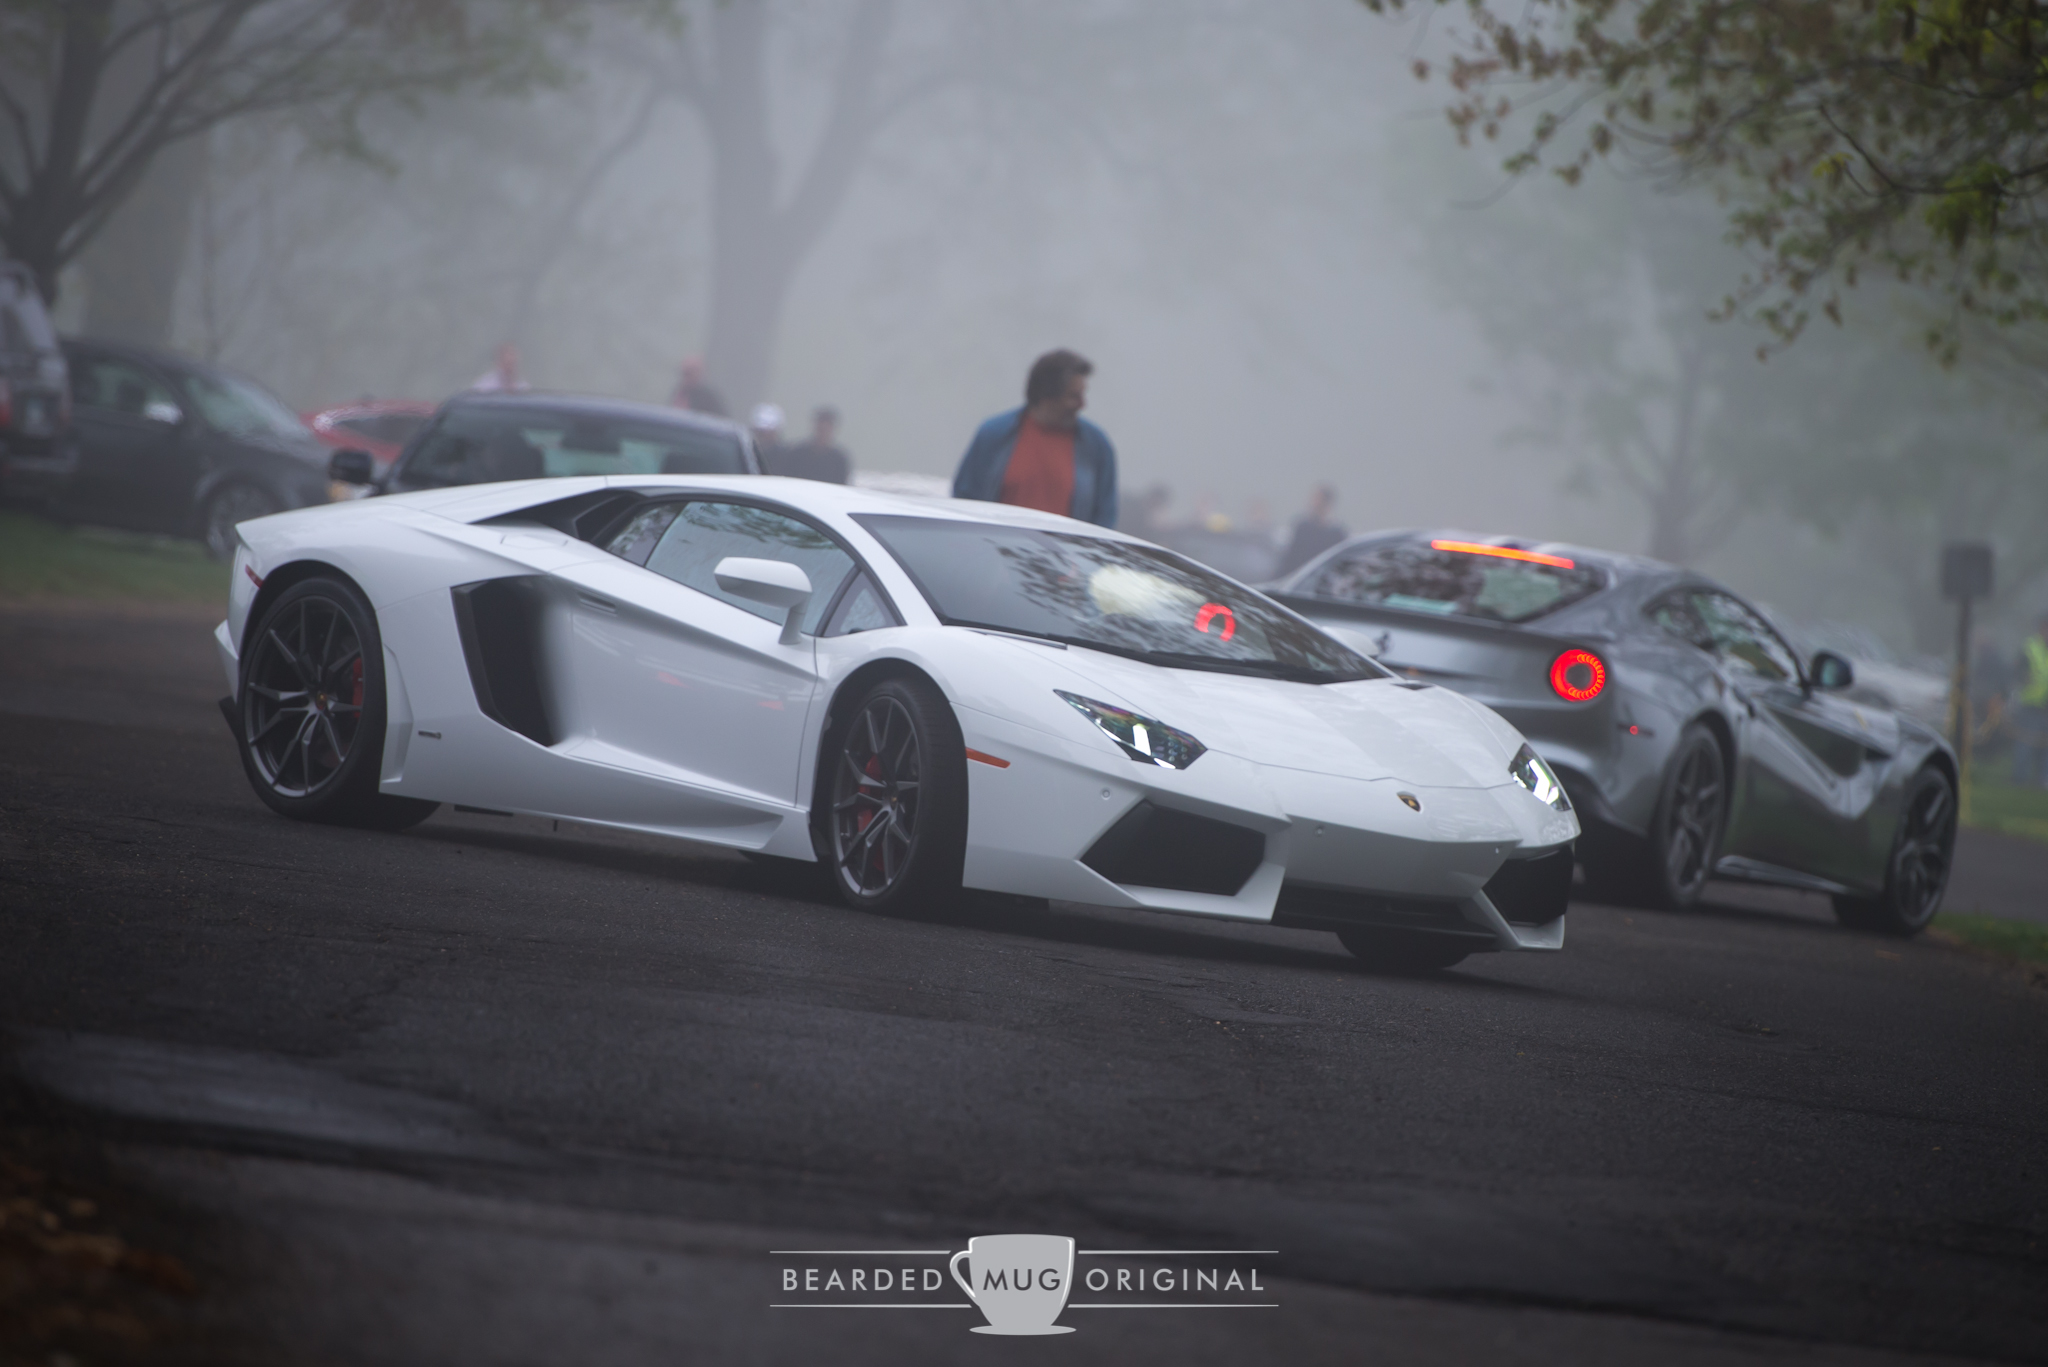 Supercars were coming and going on all frontsand I was doing my best to capture it all.